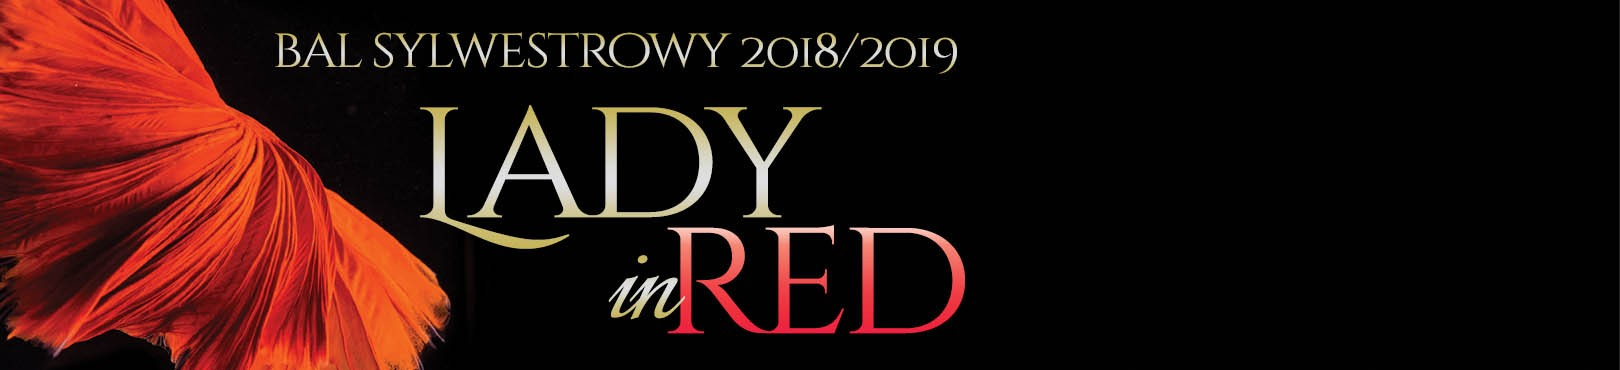 LADY IN RED Bal Sylwestrowy 2018